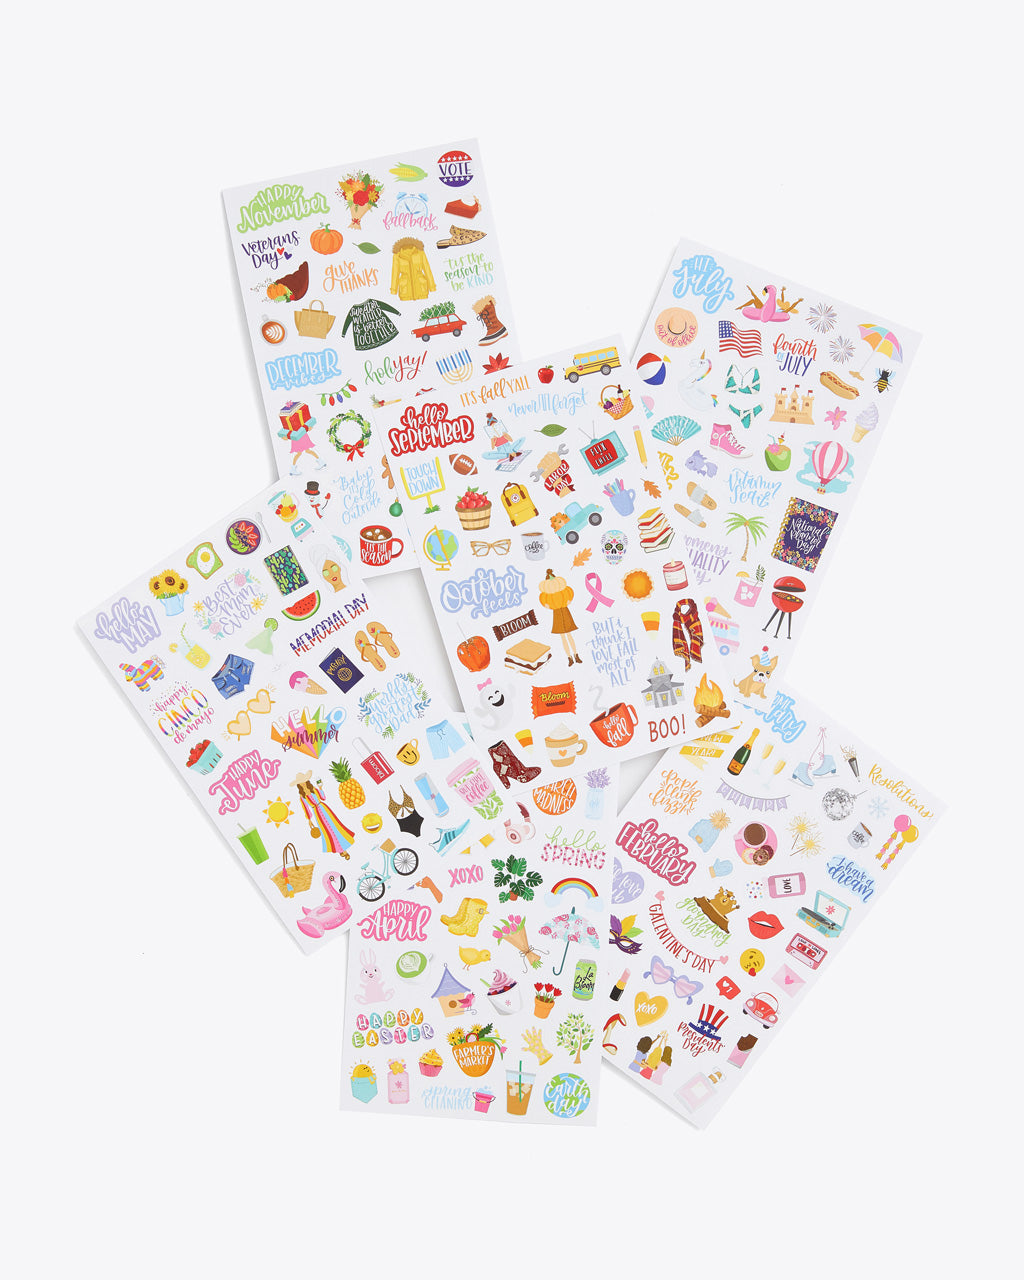 6 sticker sheets of unique holiday designed stickers